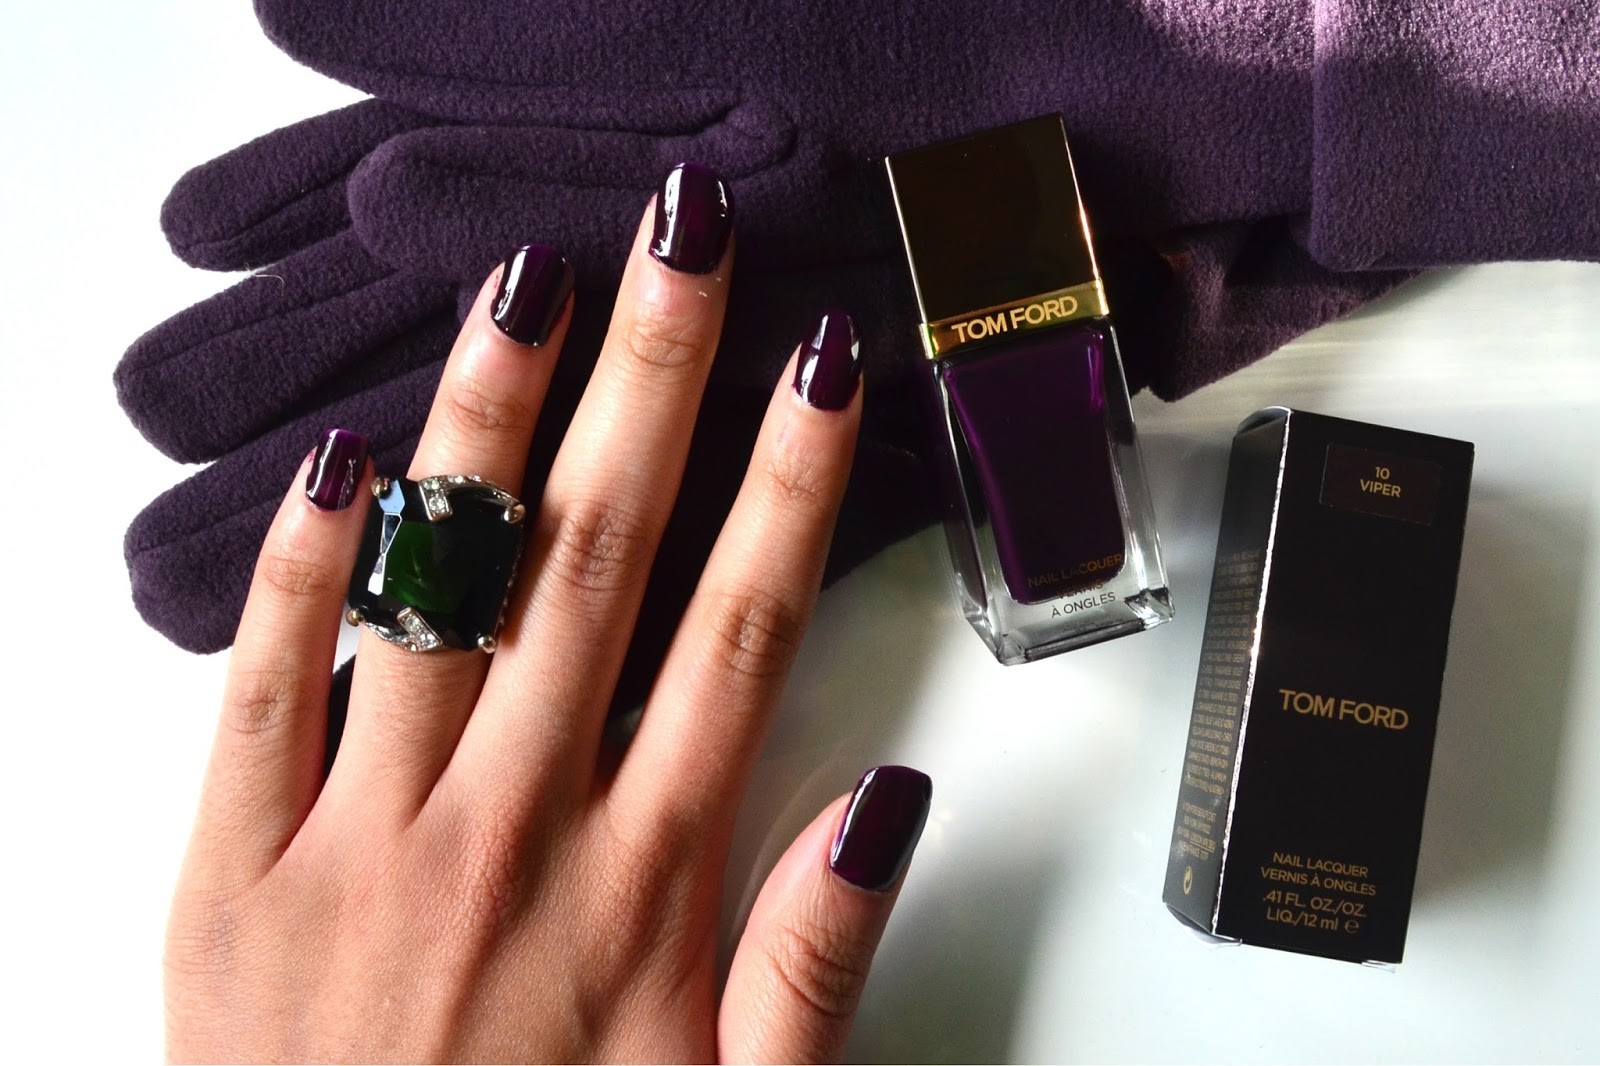 MishMreow: Tom Ford\'s Viper Nail Lacquer for Autumn